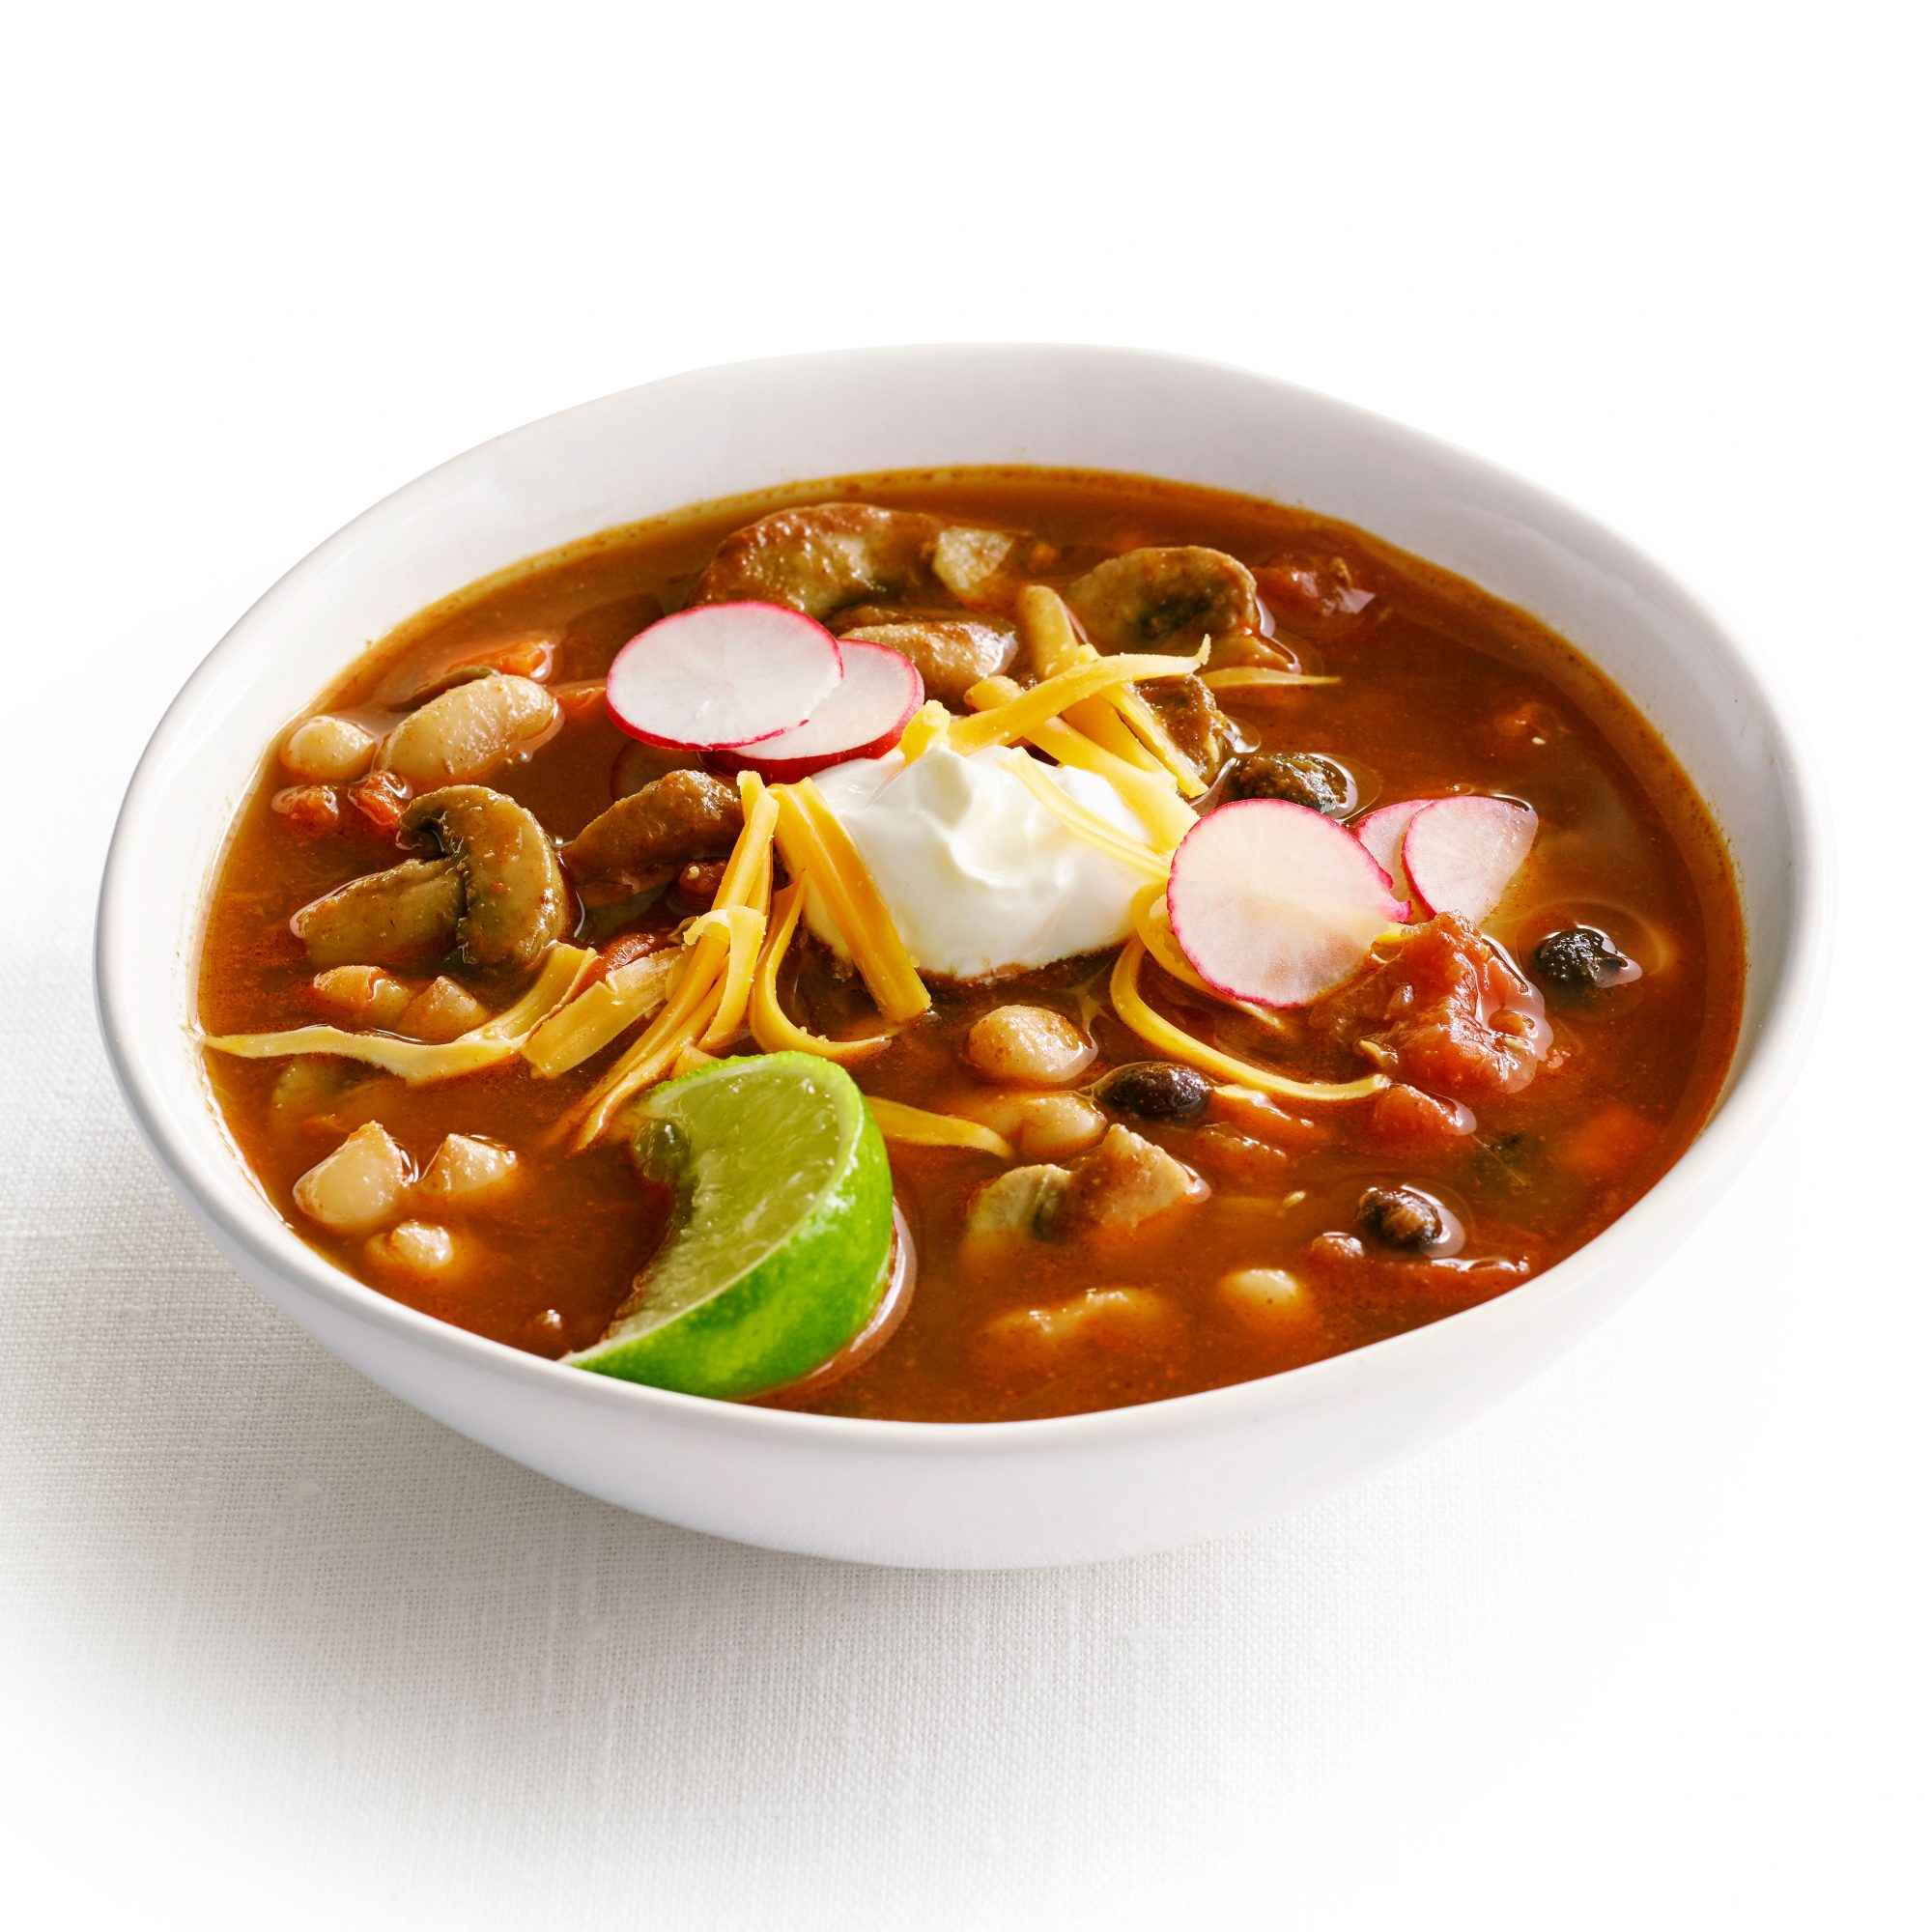 Black and White Chili image